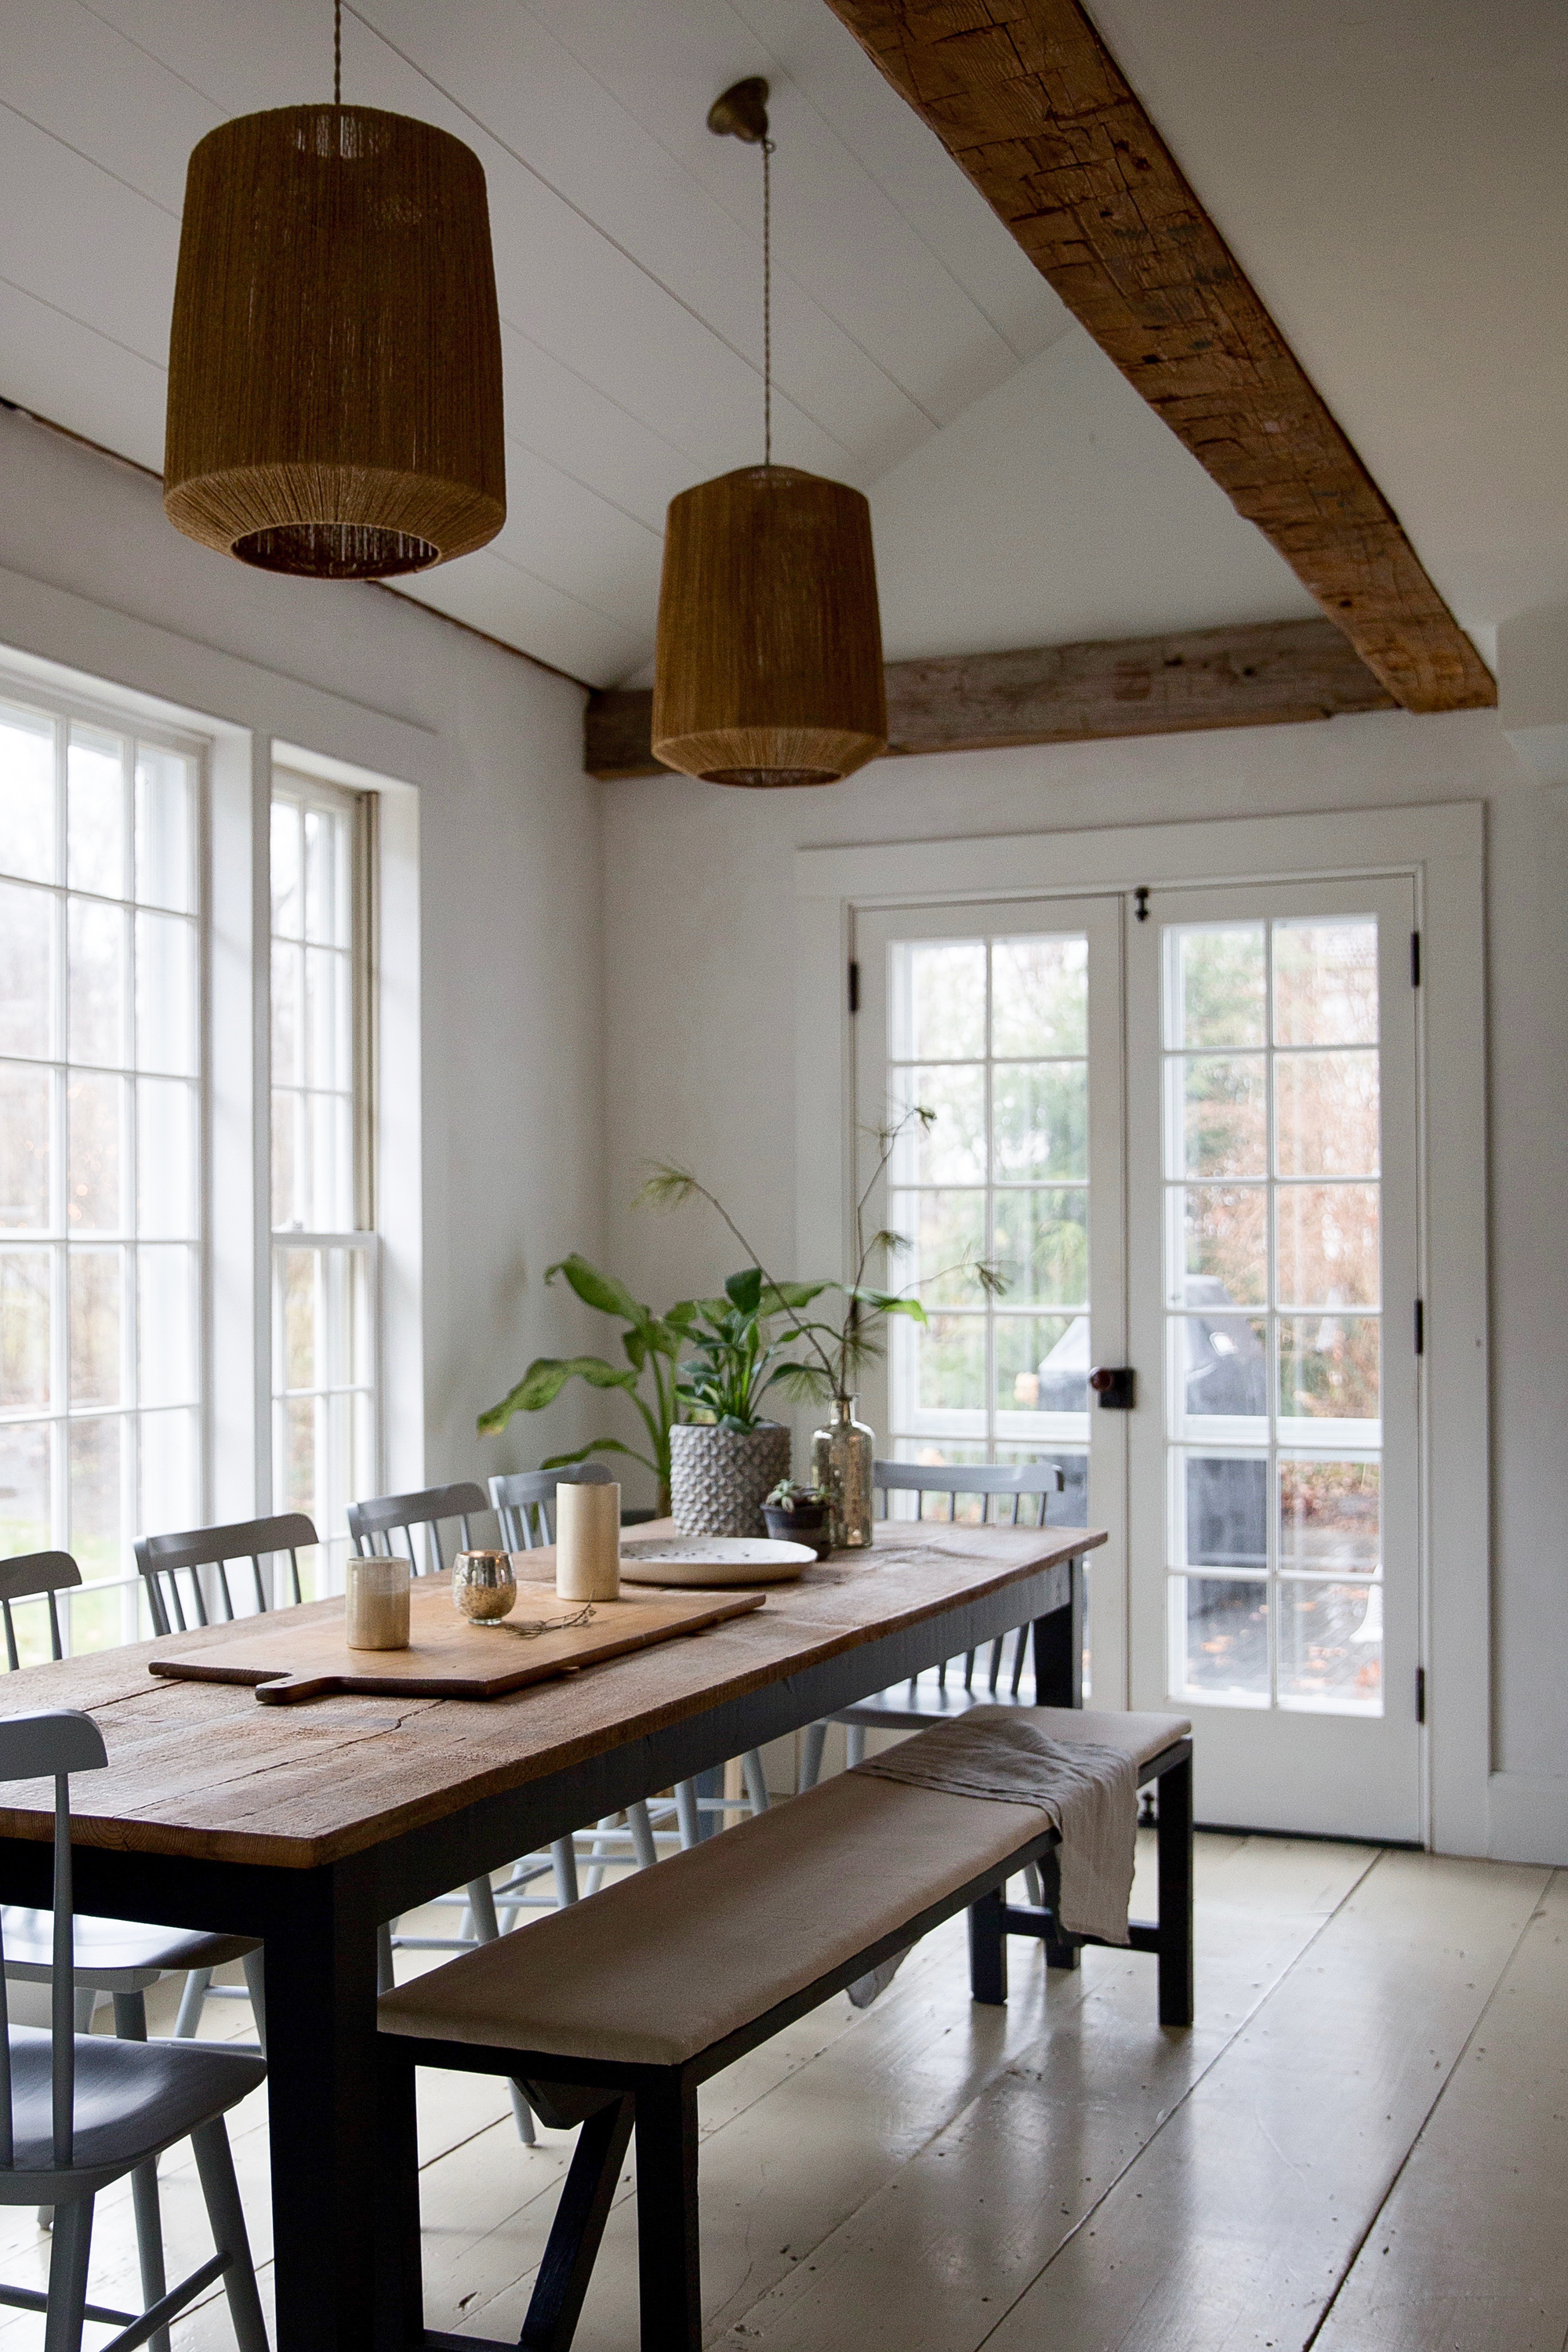 Jersey-Ice-Cream-Co-Old-Chatham-dining-room